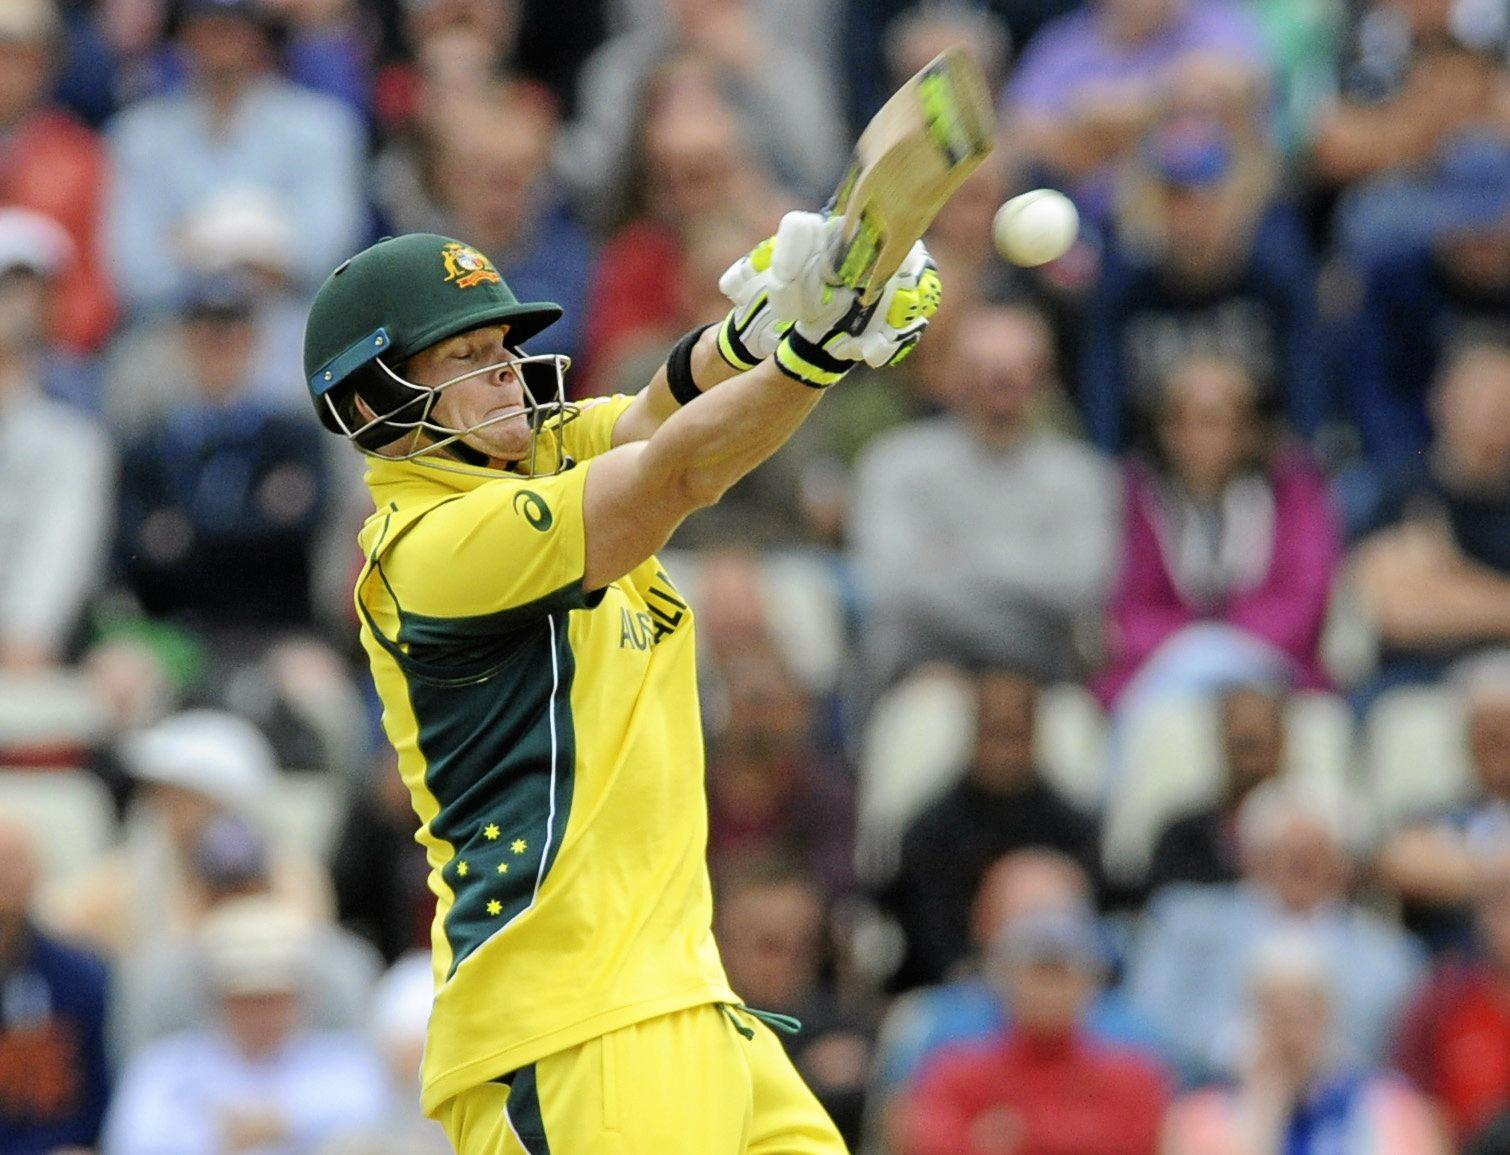 NOT ENOUGH: Australia captain Steve Smith scored 56 in his side's return of 9-277 against England but it was not enough to save Australia from an early Champions Trophy exit.